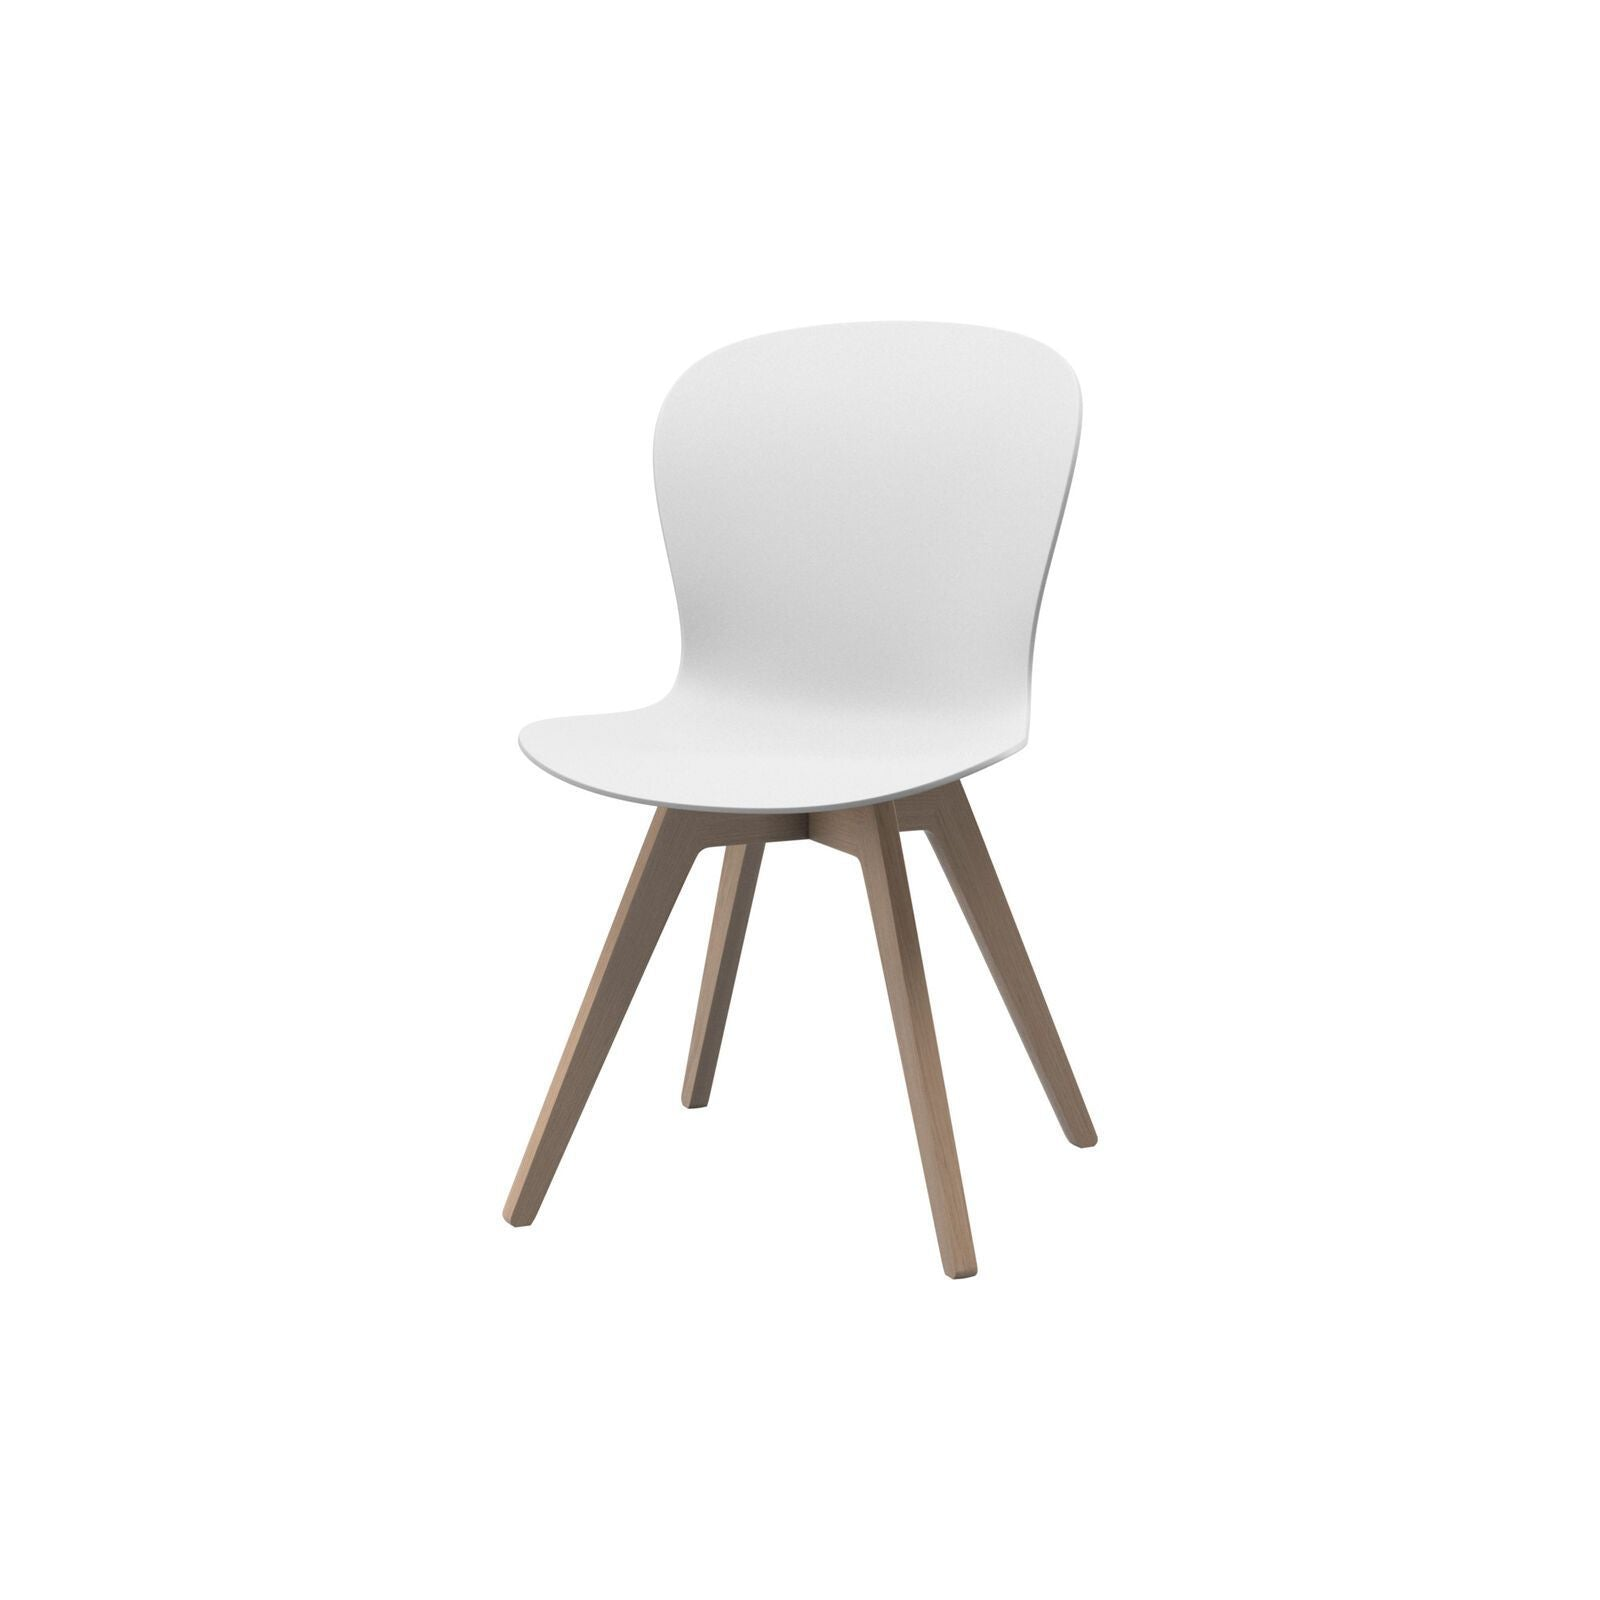 Adelaide Chair - White/Oak